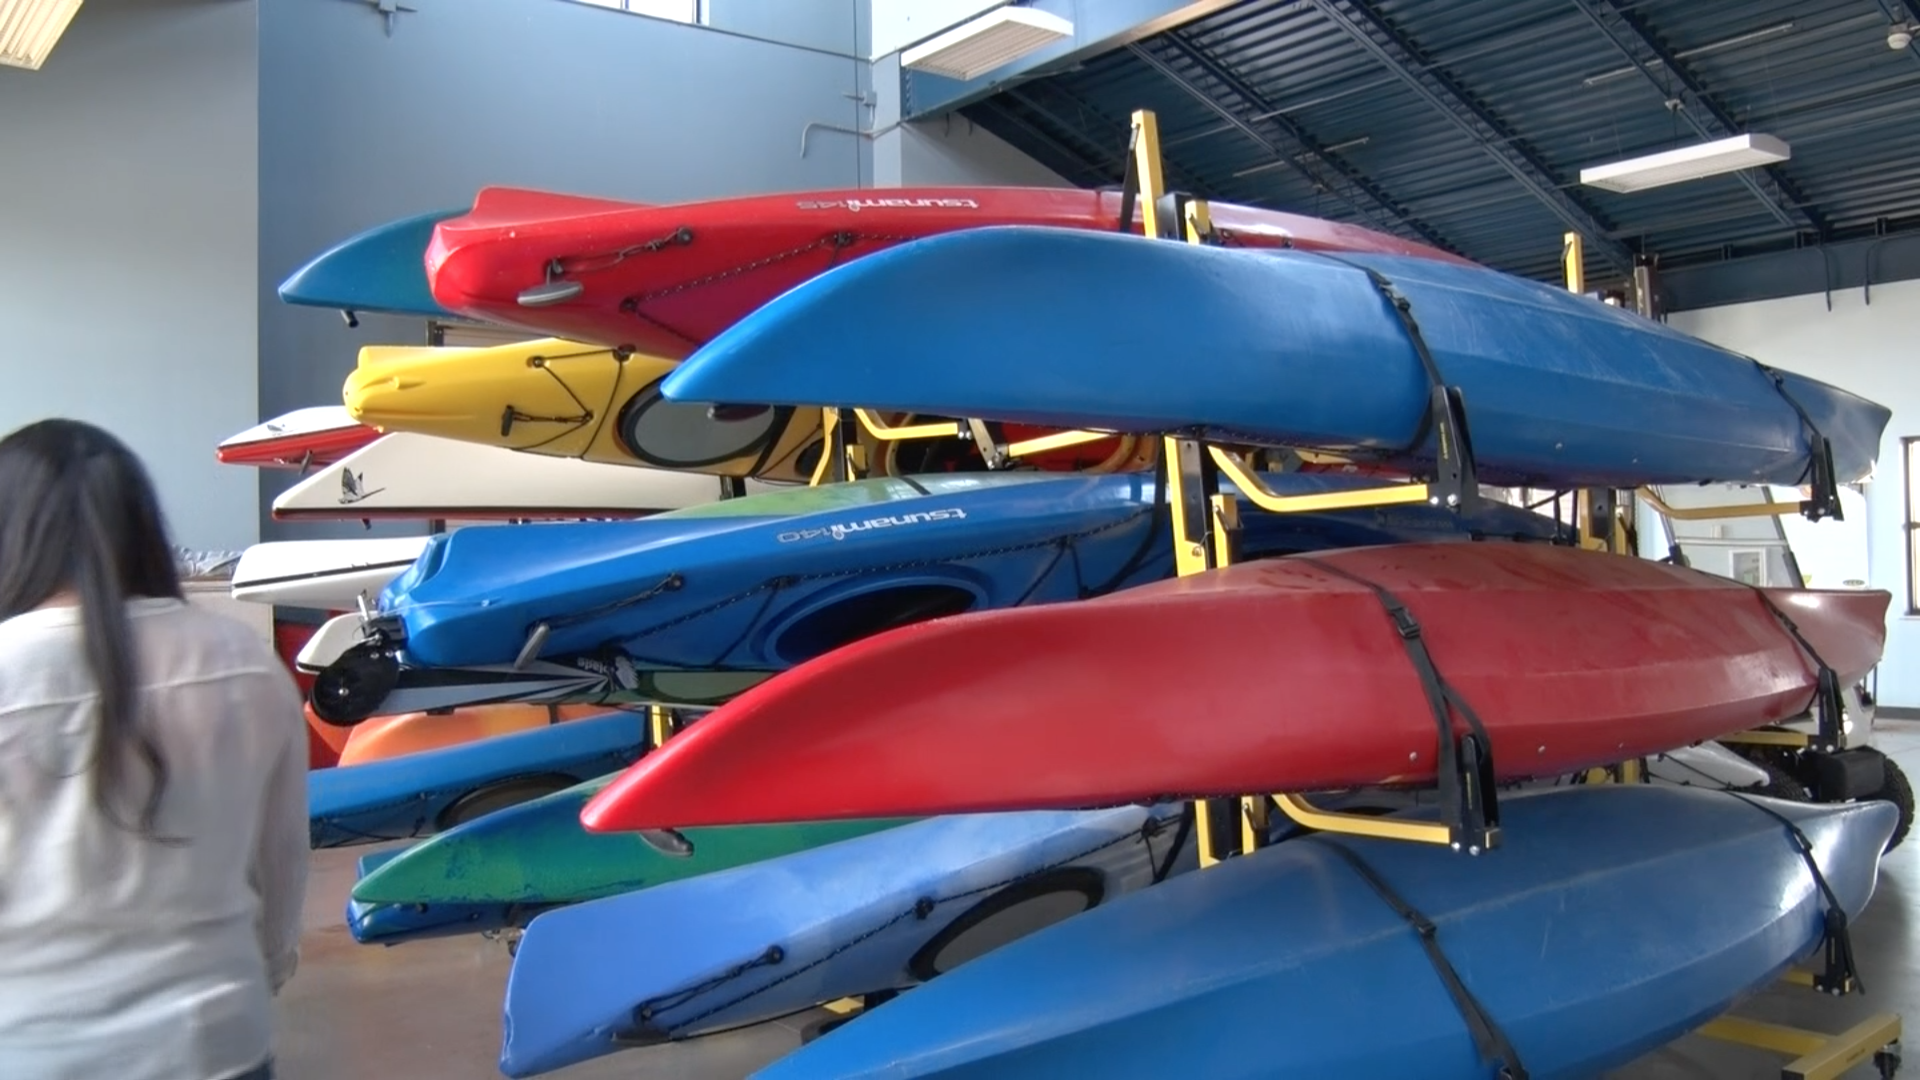 UCO's OAR Offers Outdoor Experiences